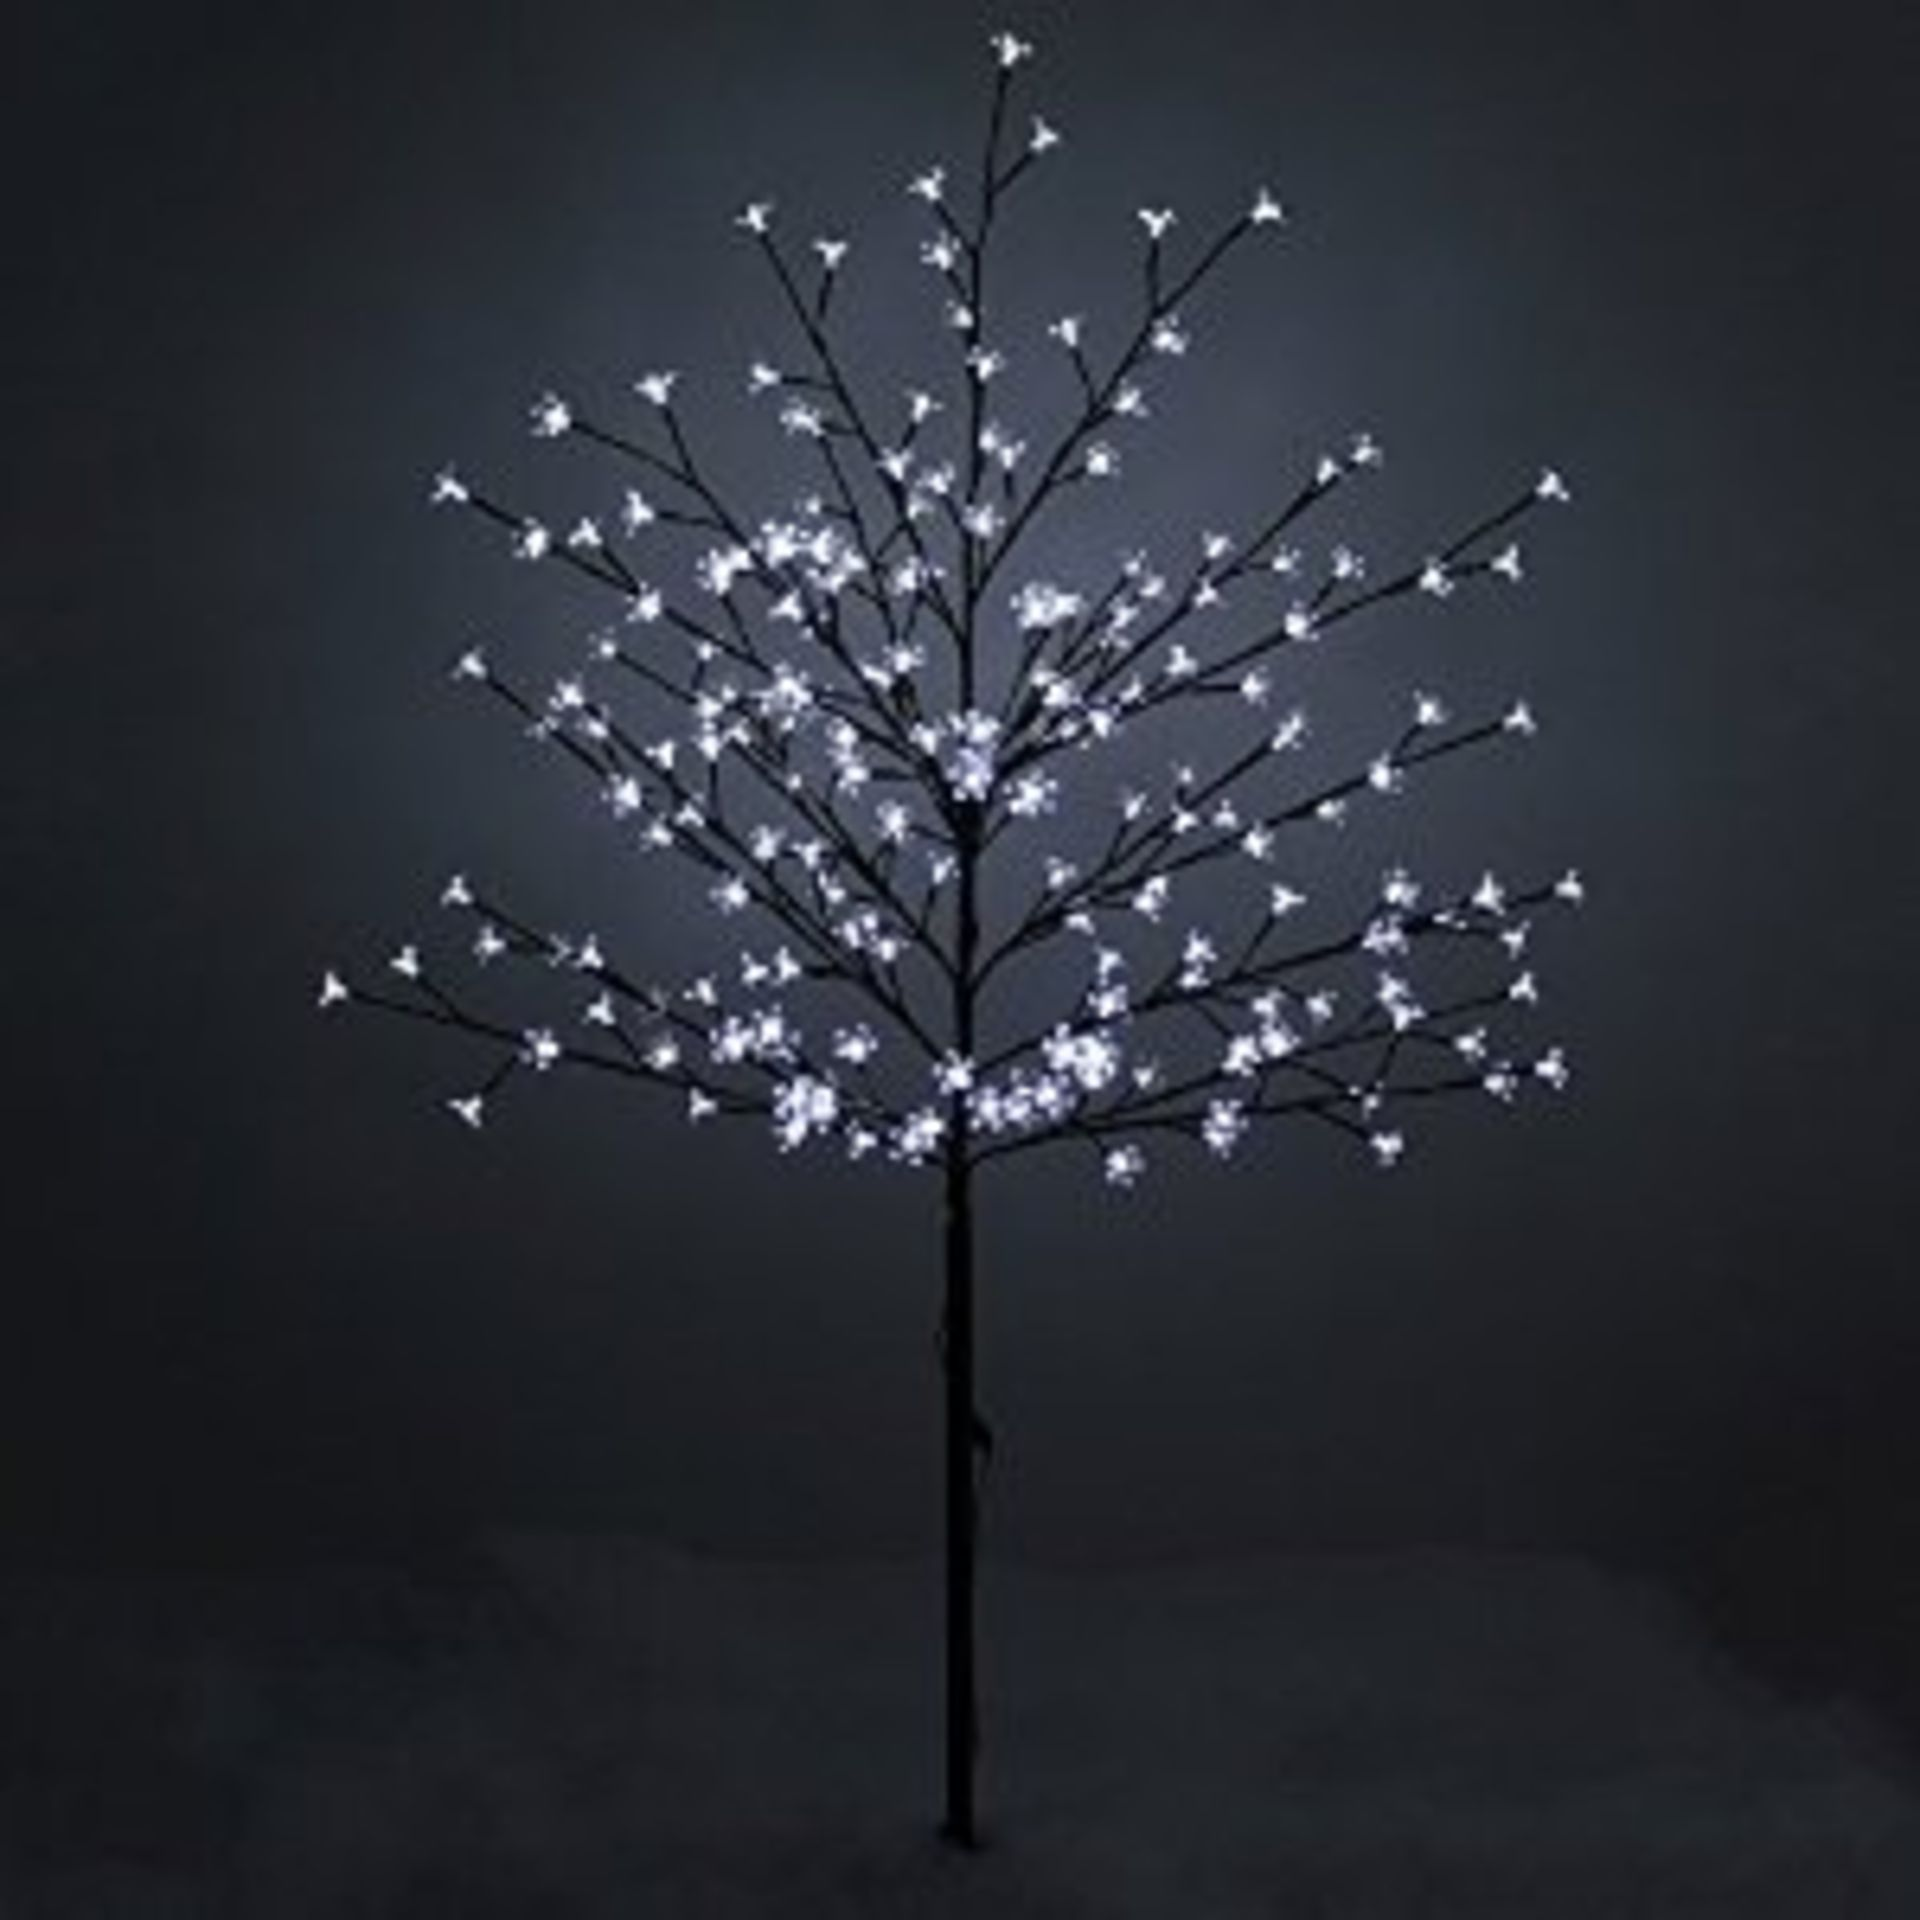 Lot 11951 - V Brand New 150cm Snow White LED Blossom Tree For Indoor And Outdoor Use RRP £54.99